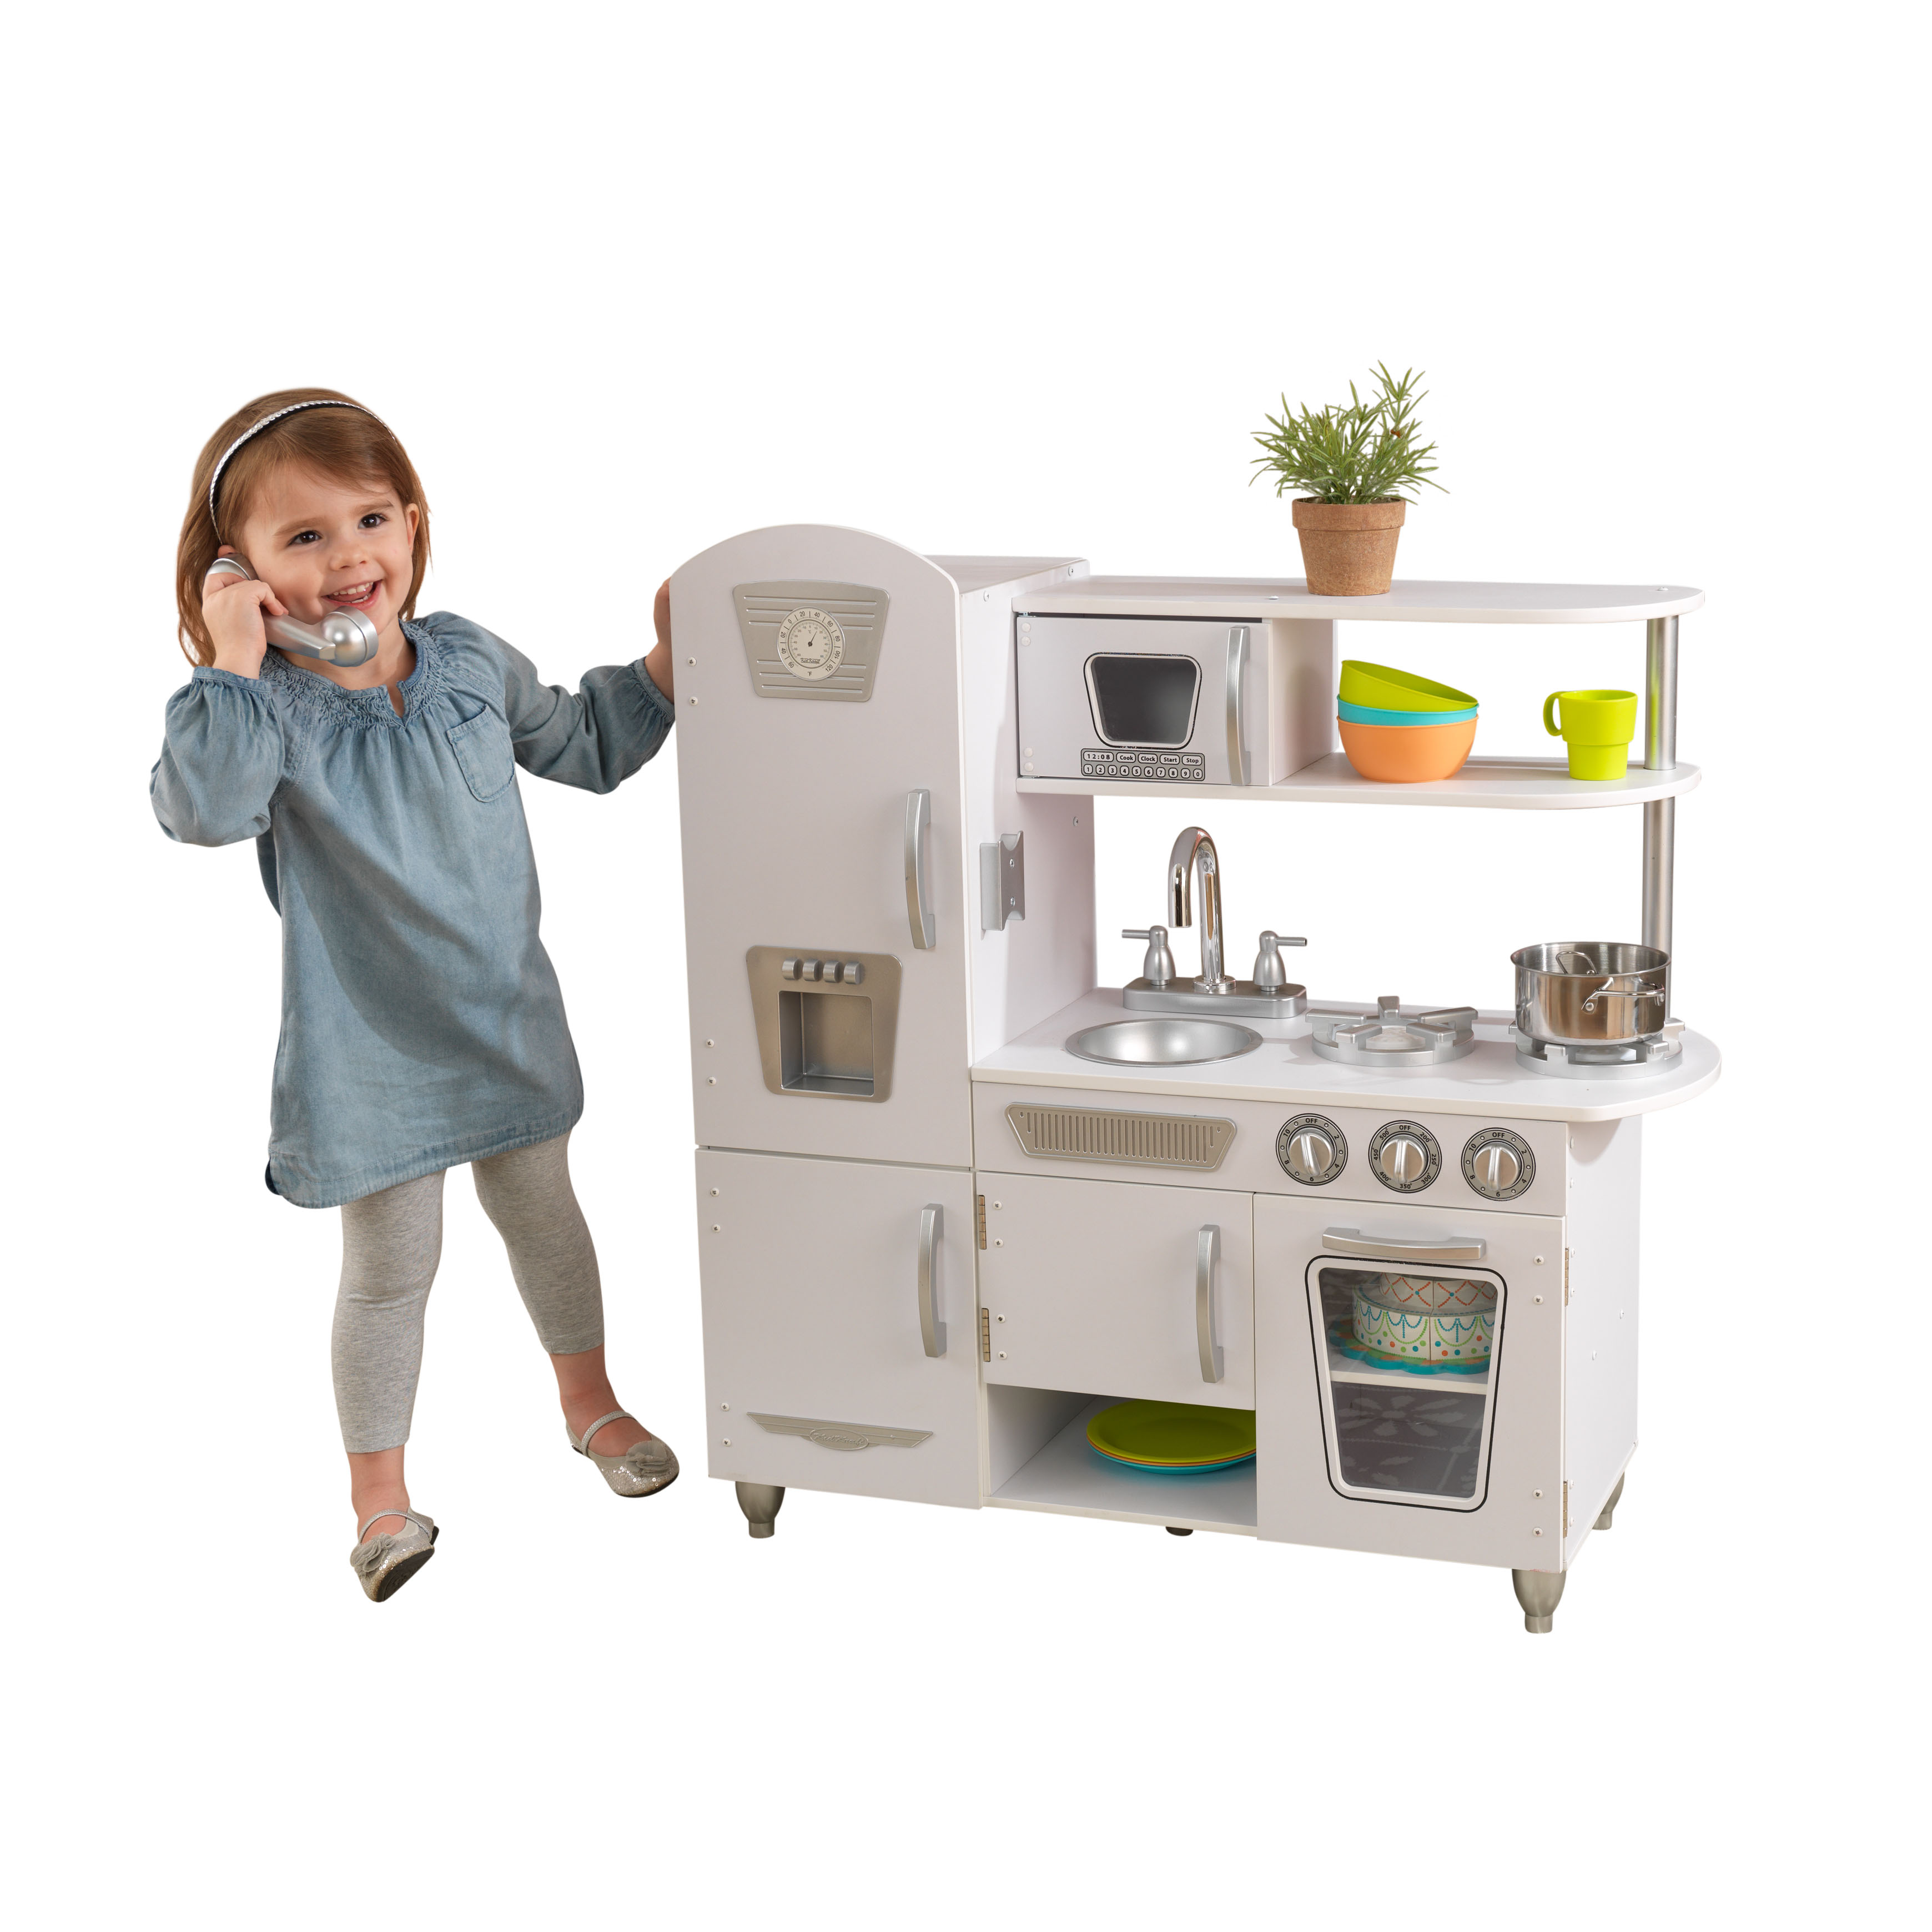 KidKraft Vintage Play Kitchen, White KidKraft Kitchen